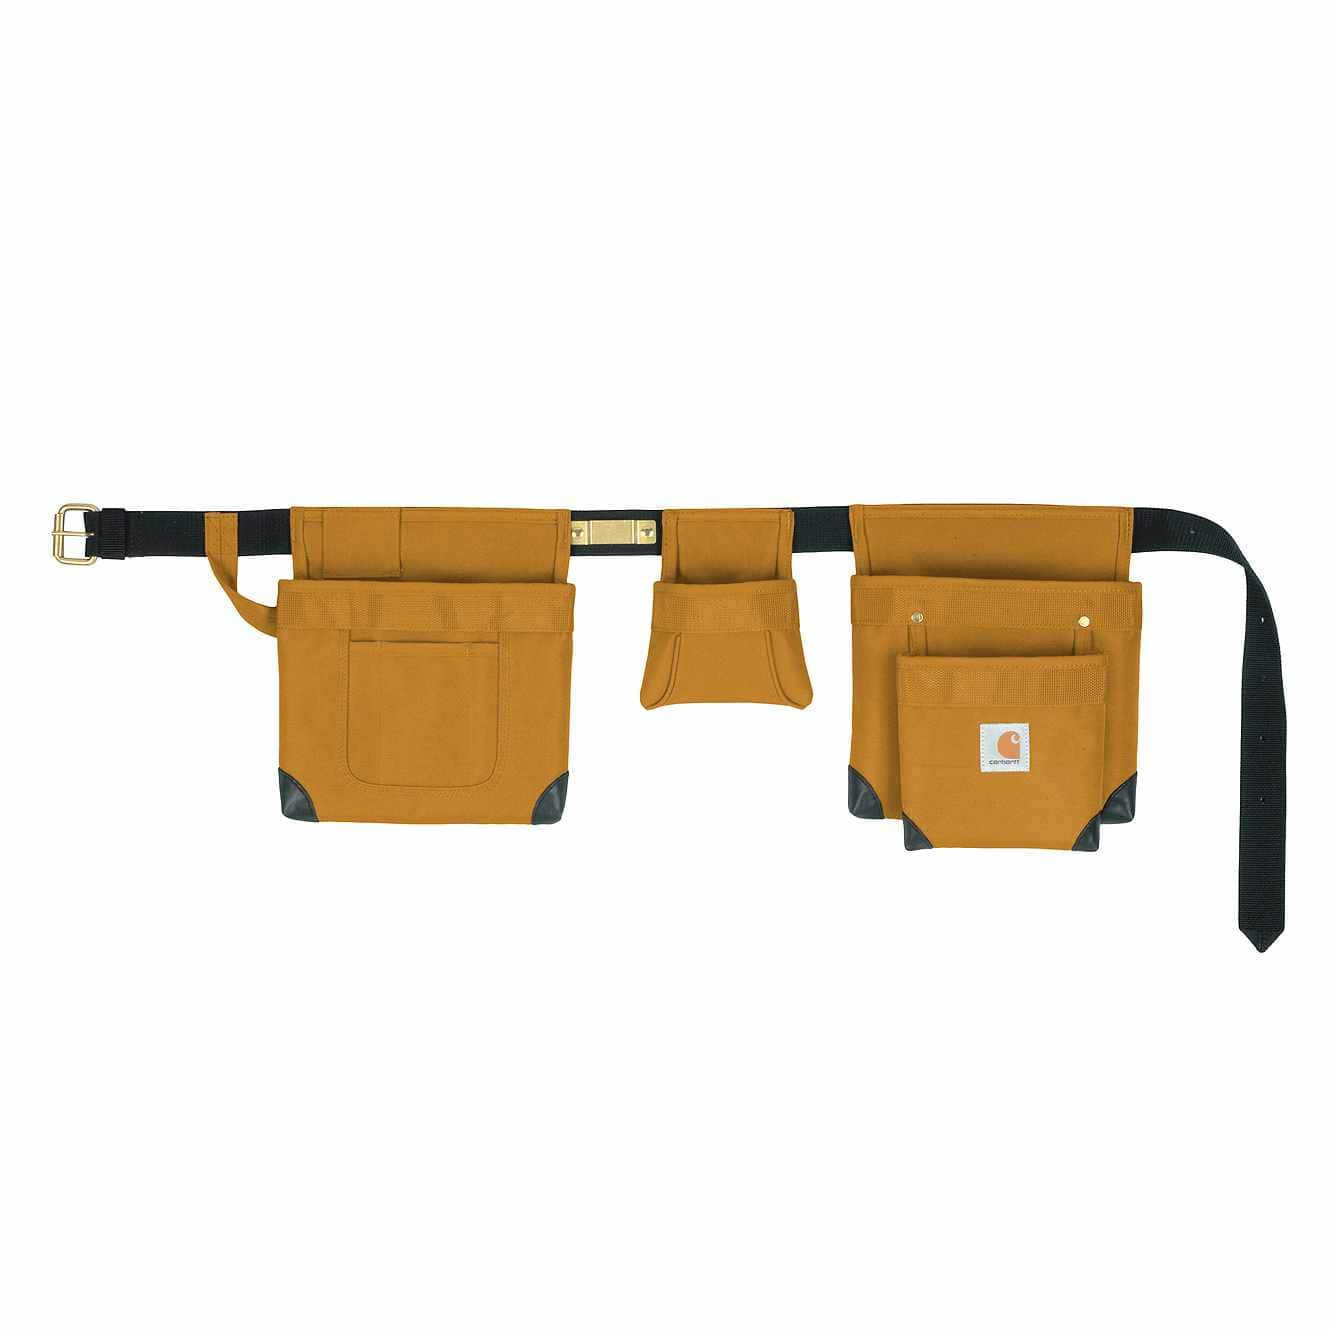 Picture of Legacy Standard Tool Belt in Carhartt Brown